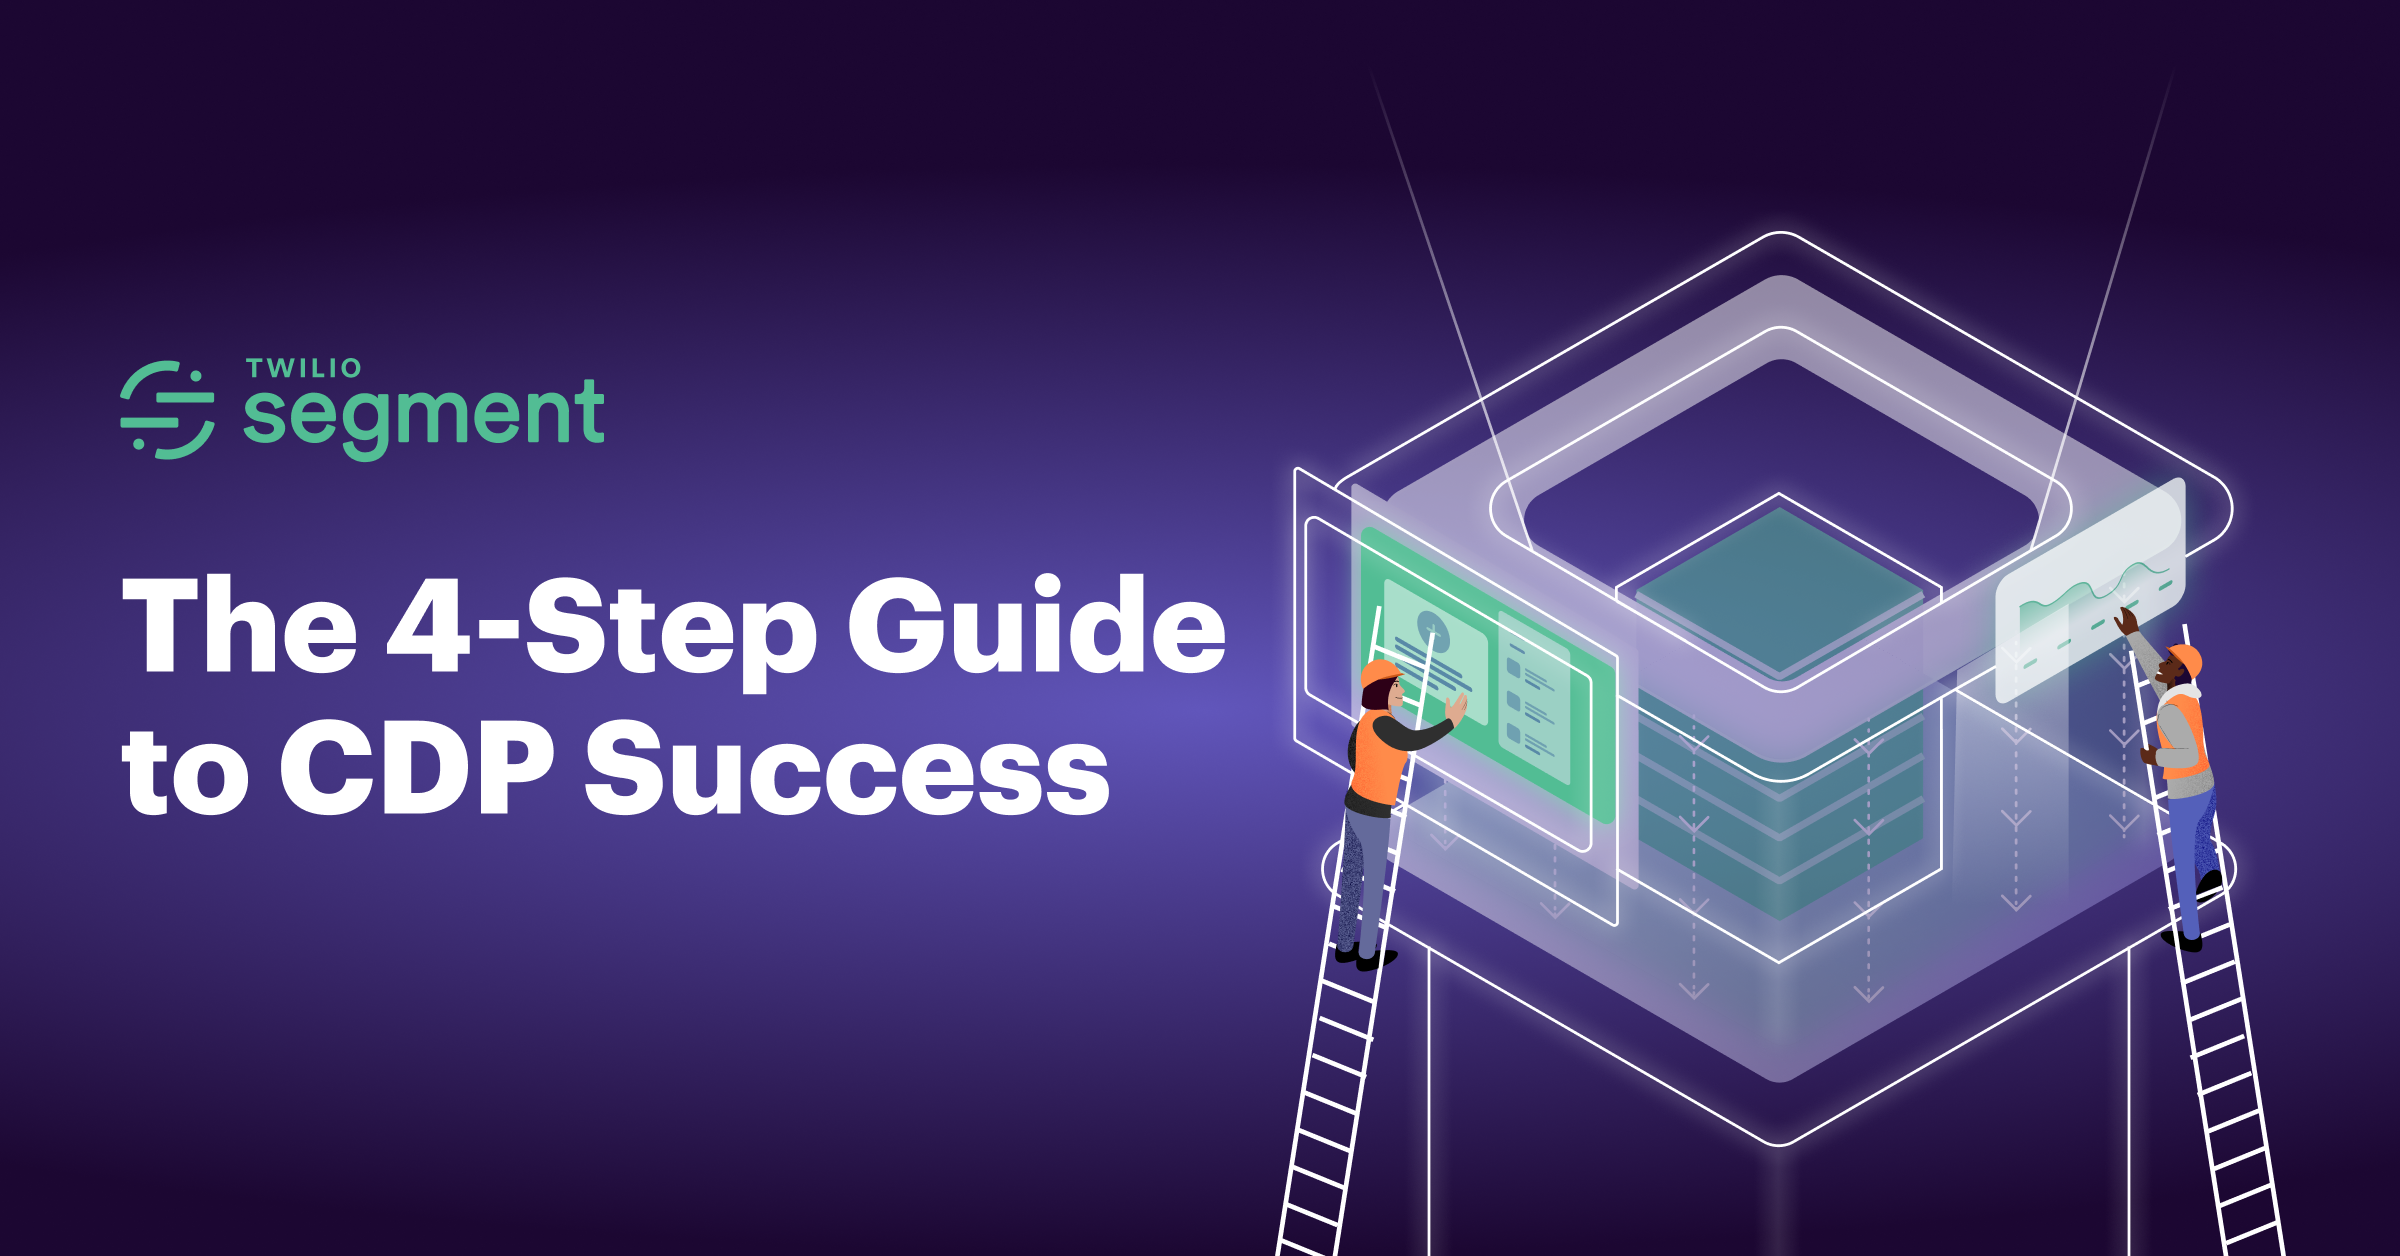 The 4-Step Guide to CDP Success